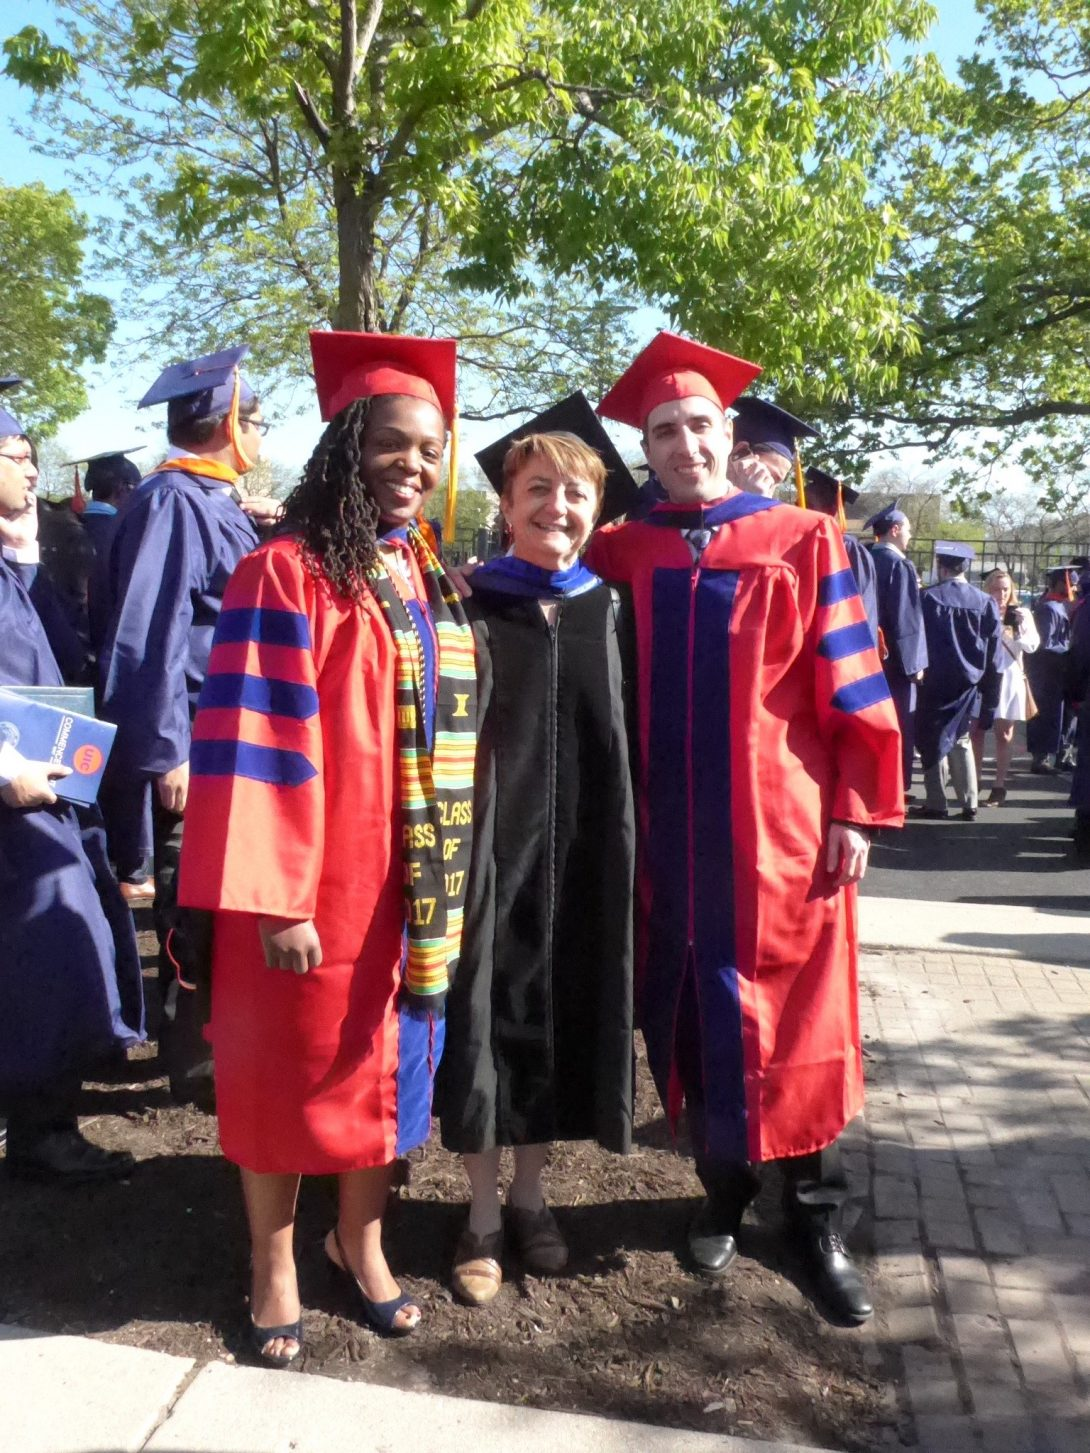 Rachel Harsley, Professor Barbara Di Eugenio, and Nick Green at graduation